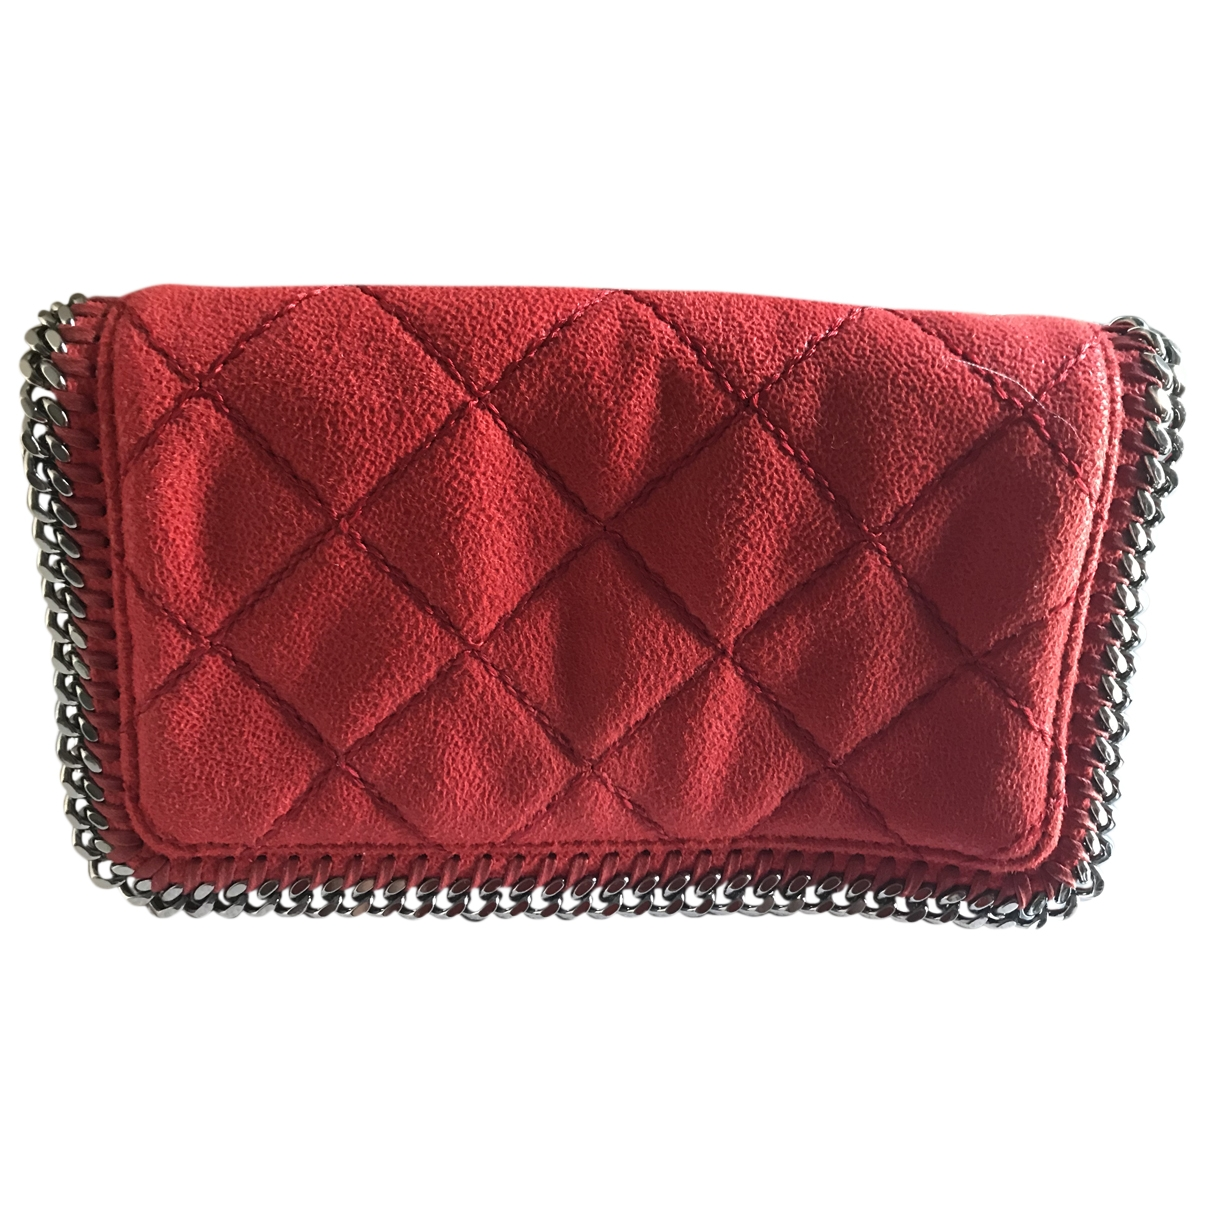 Stella Mccartney Falabella Clutch in  Rot Leinen